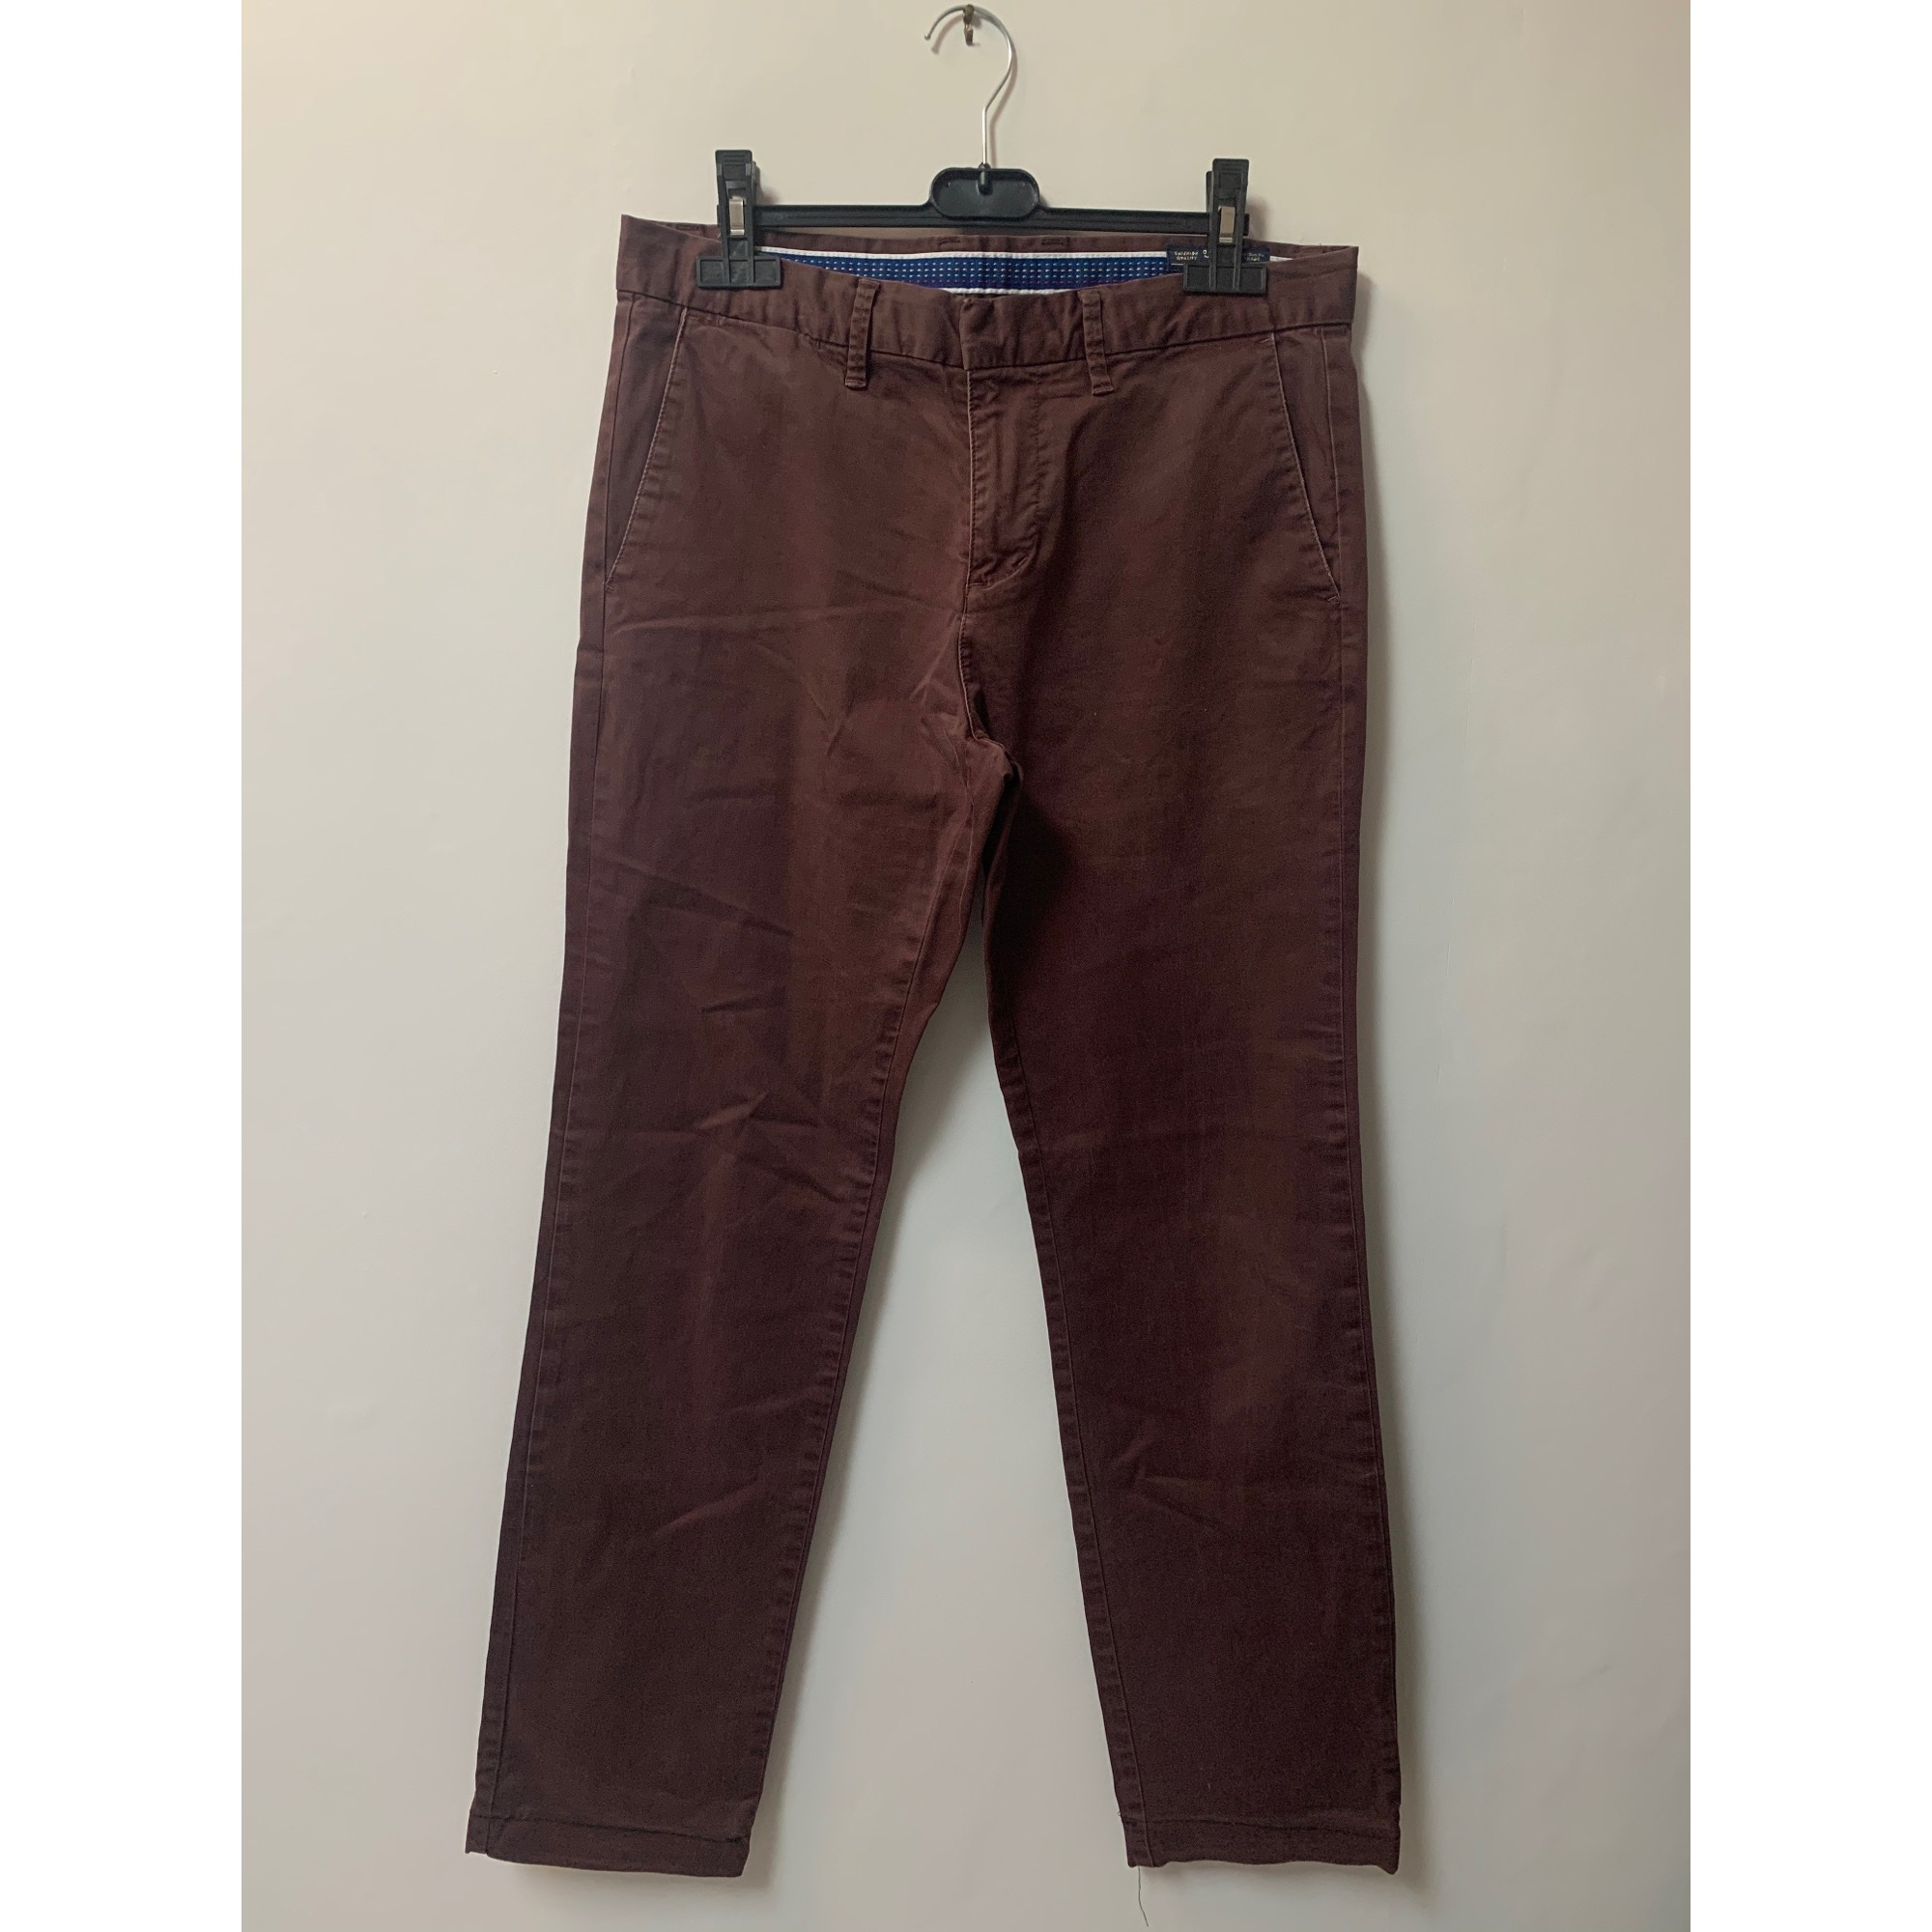 Pantalon droit JULES Marron